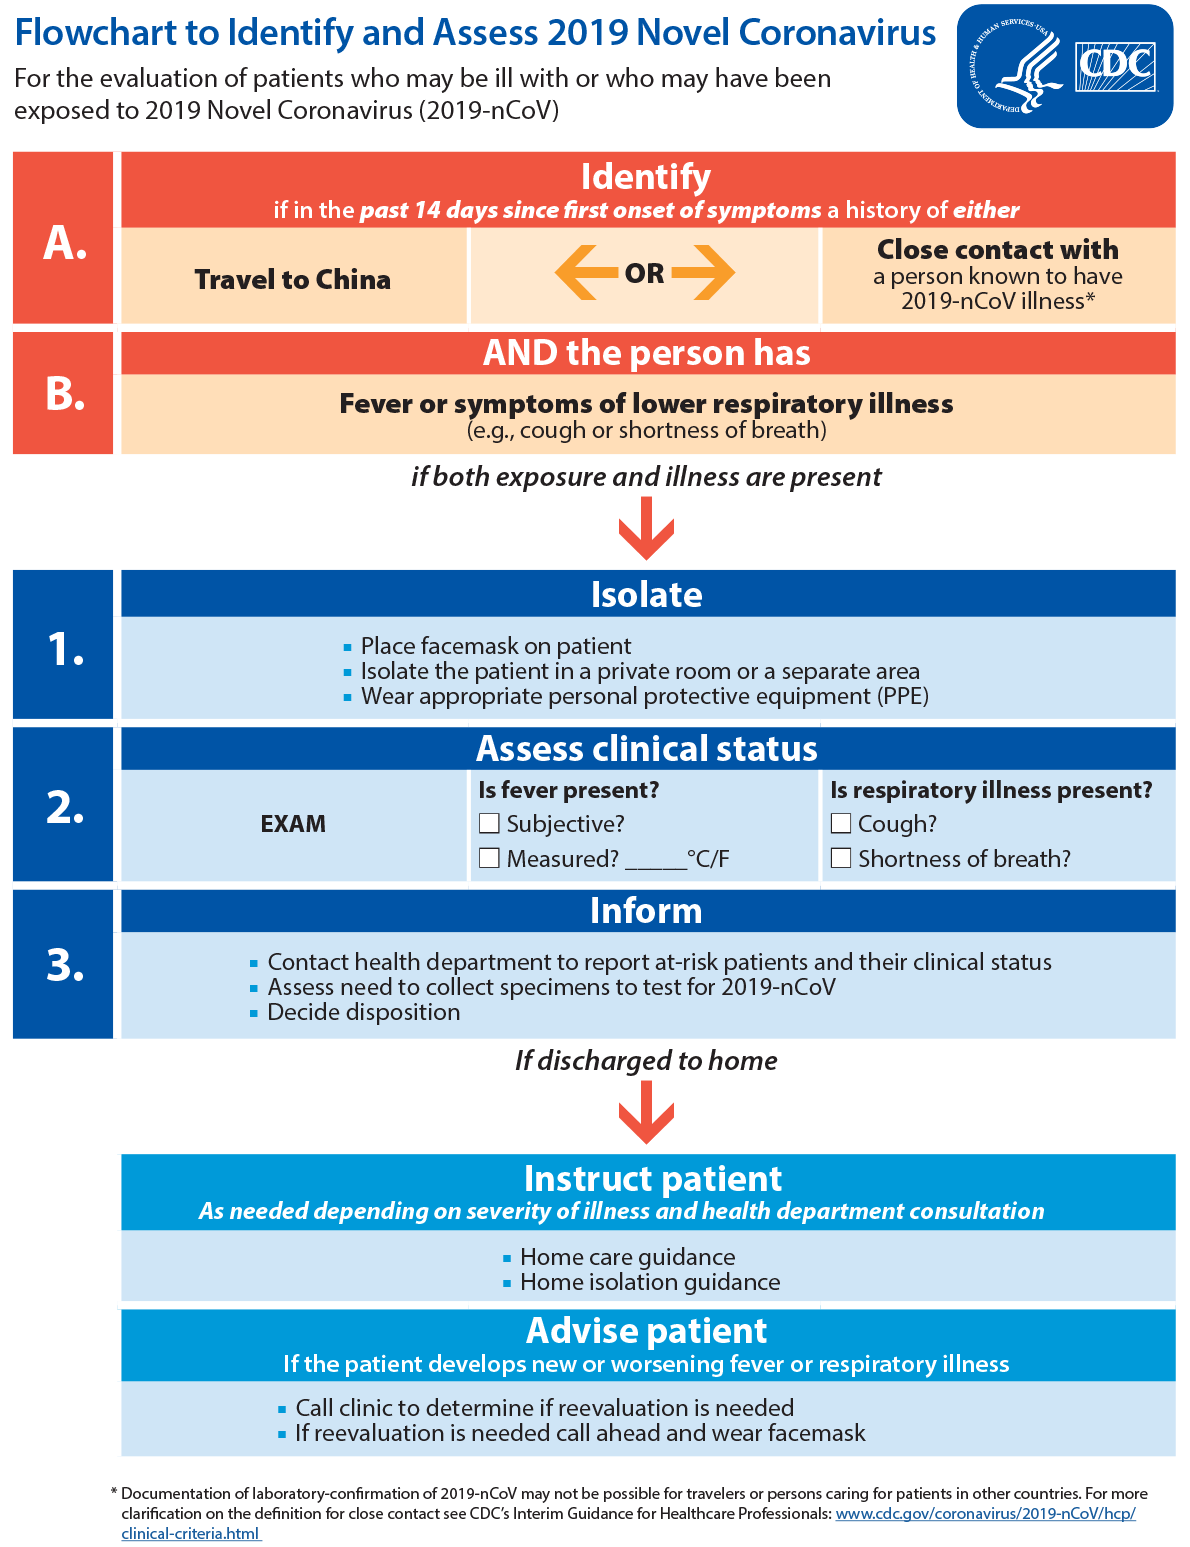 Flowchart to Identify and Assess 2019 Novel Coronavirus for the evaluation of patients who may be ill with or who may have been exposed to 2019 Novel Coronavirus (2019-nCoV)